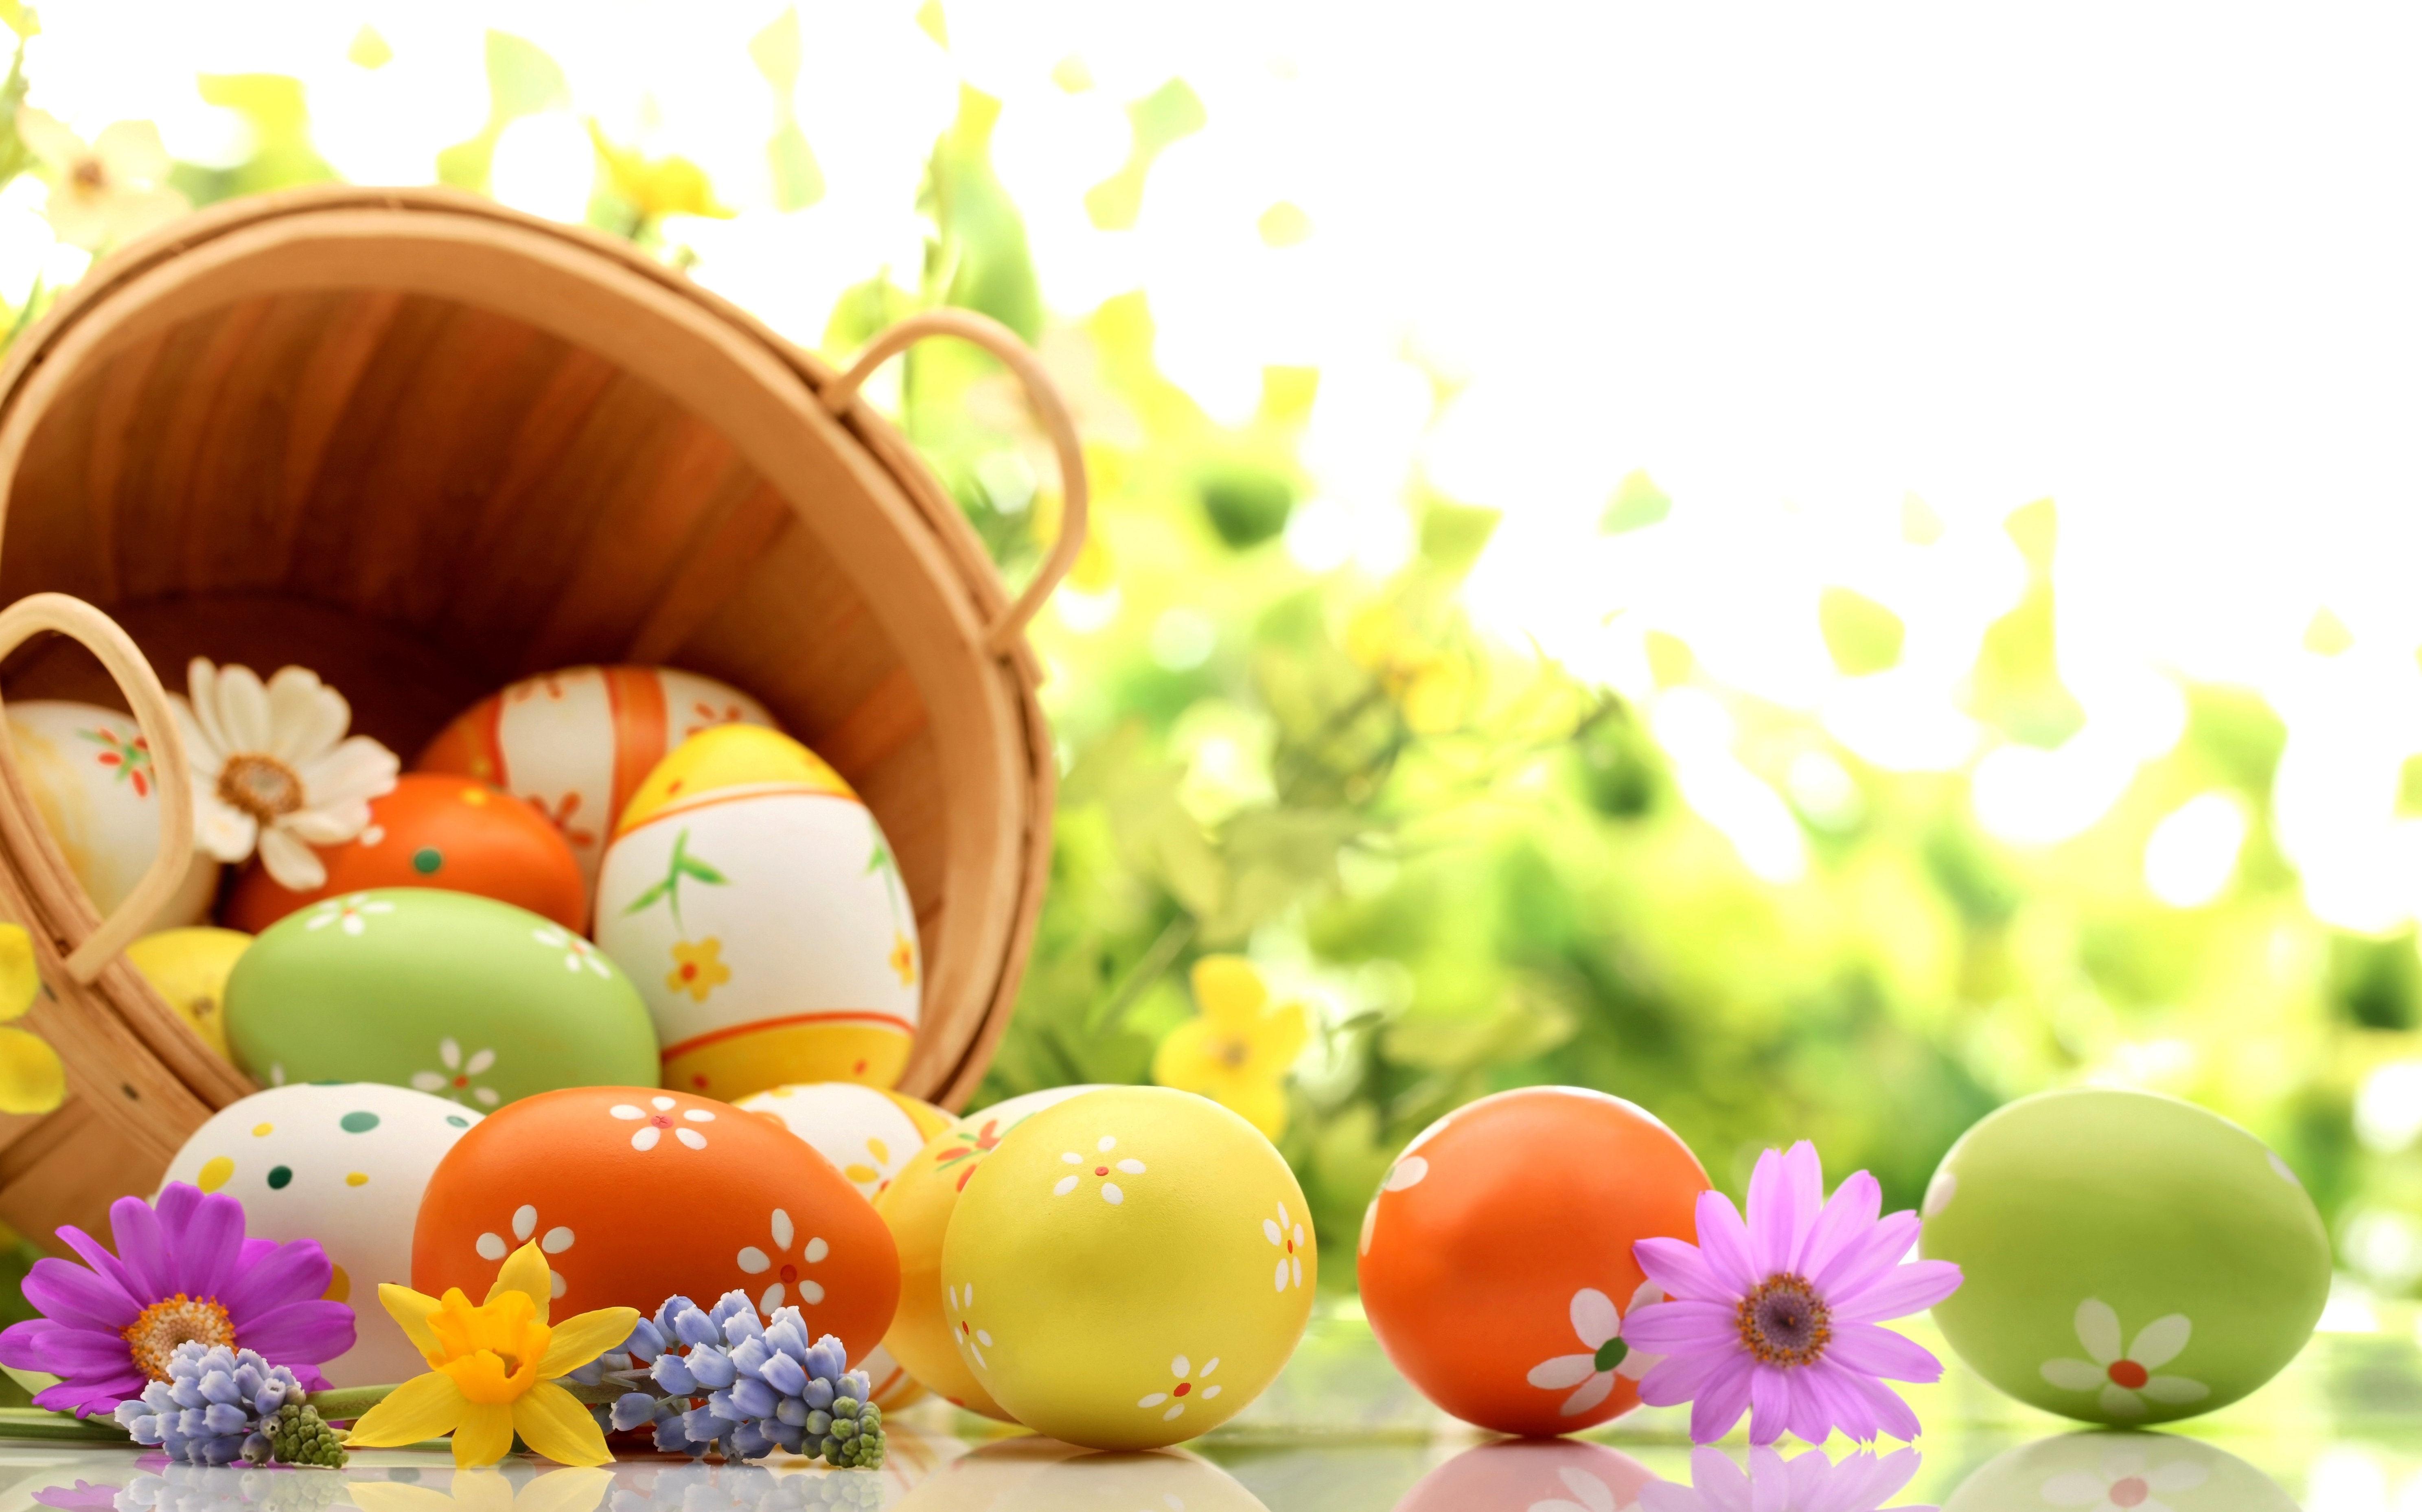 Free Hd Easter Wallpaper High Resolution Easter Background